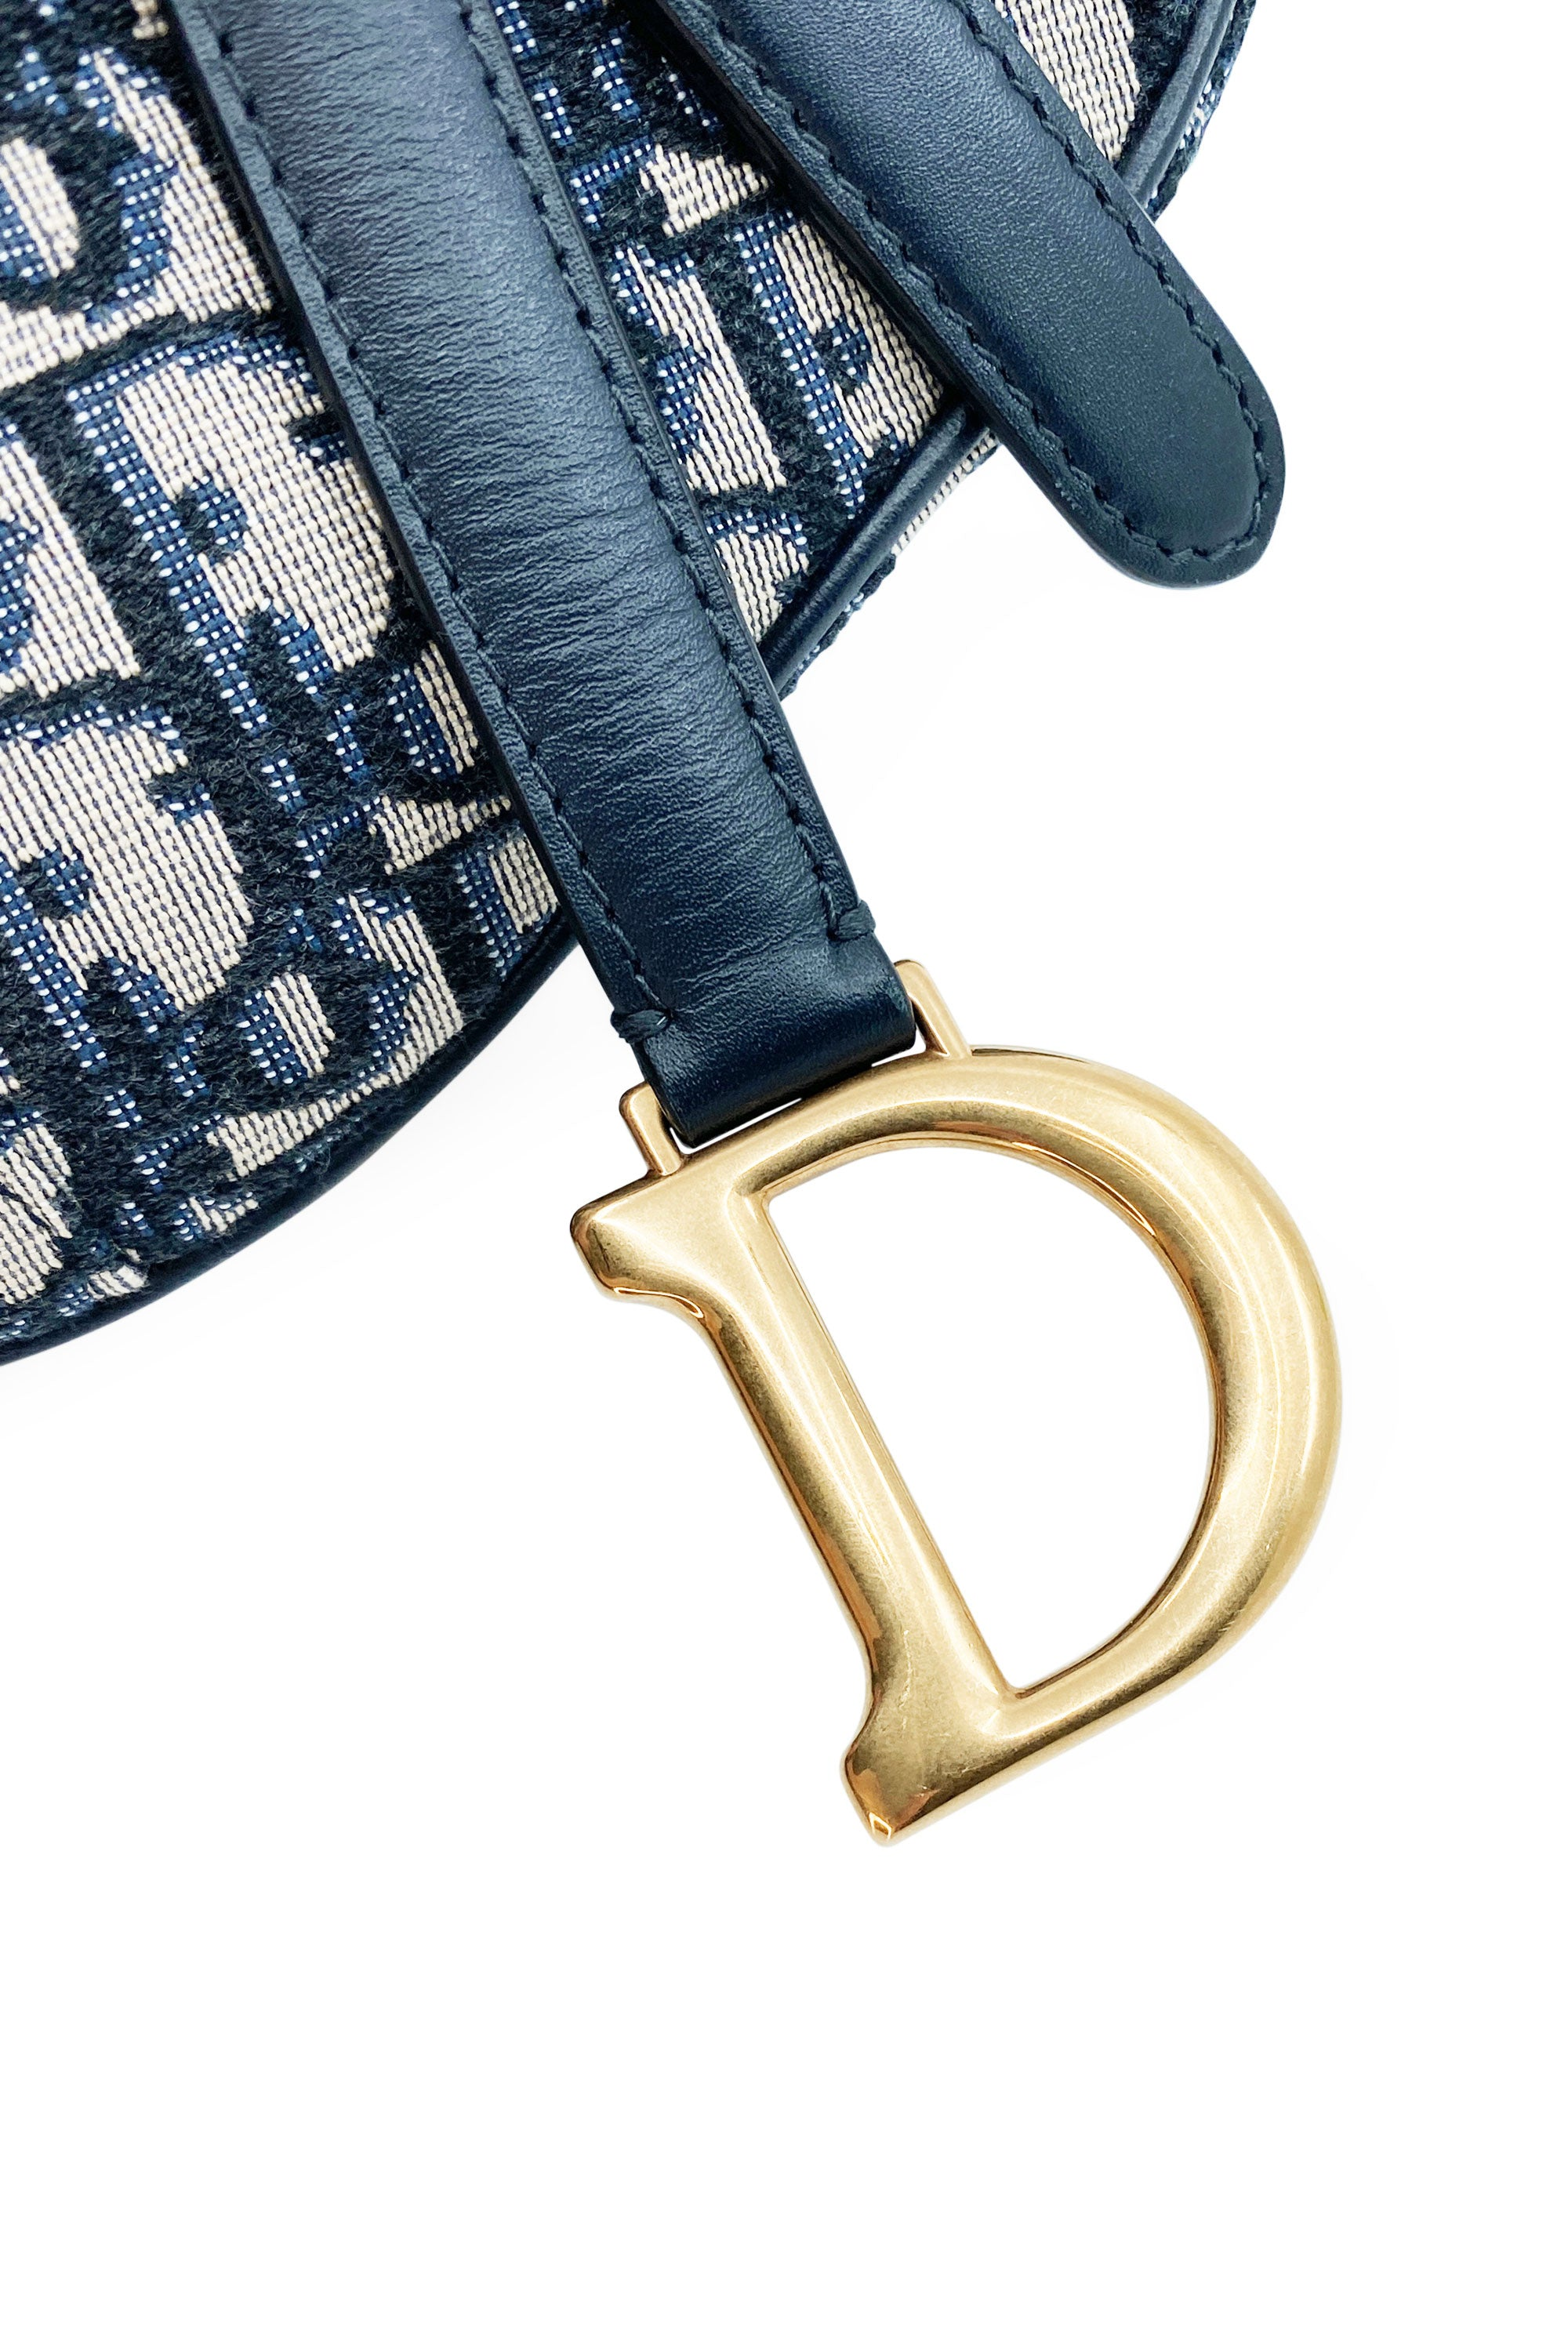 CHRISTIAN DIOR Saddle Bag Oblique Small